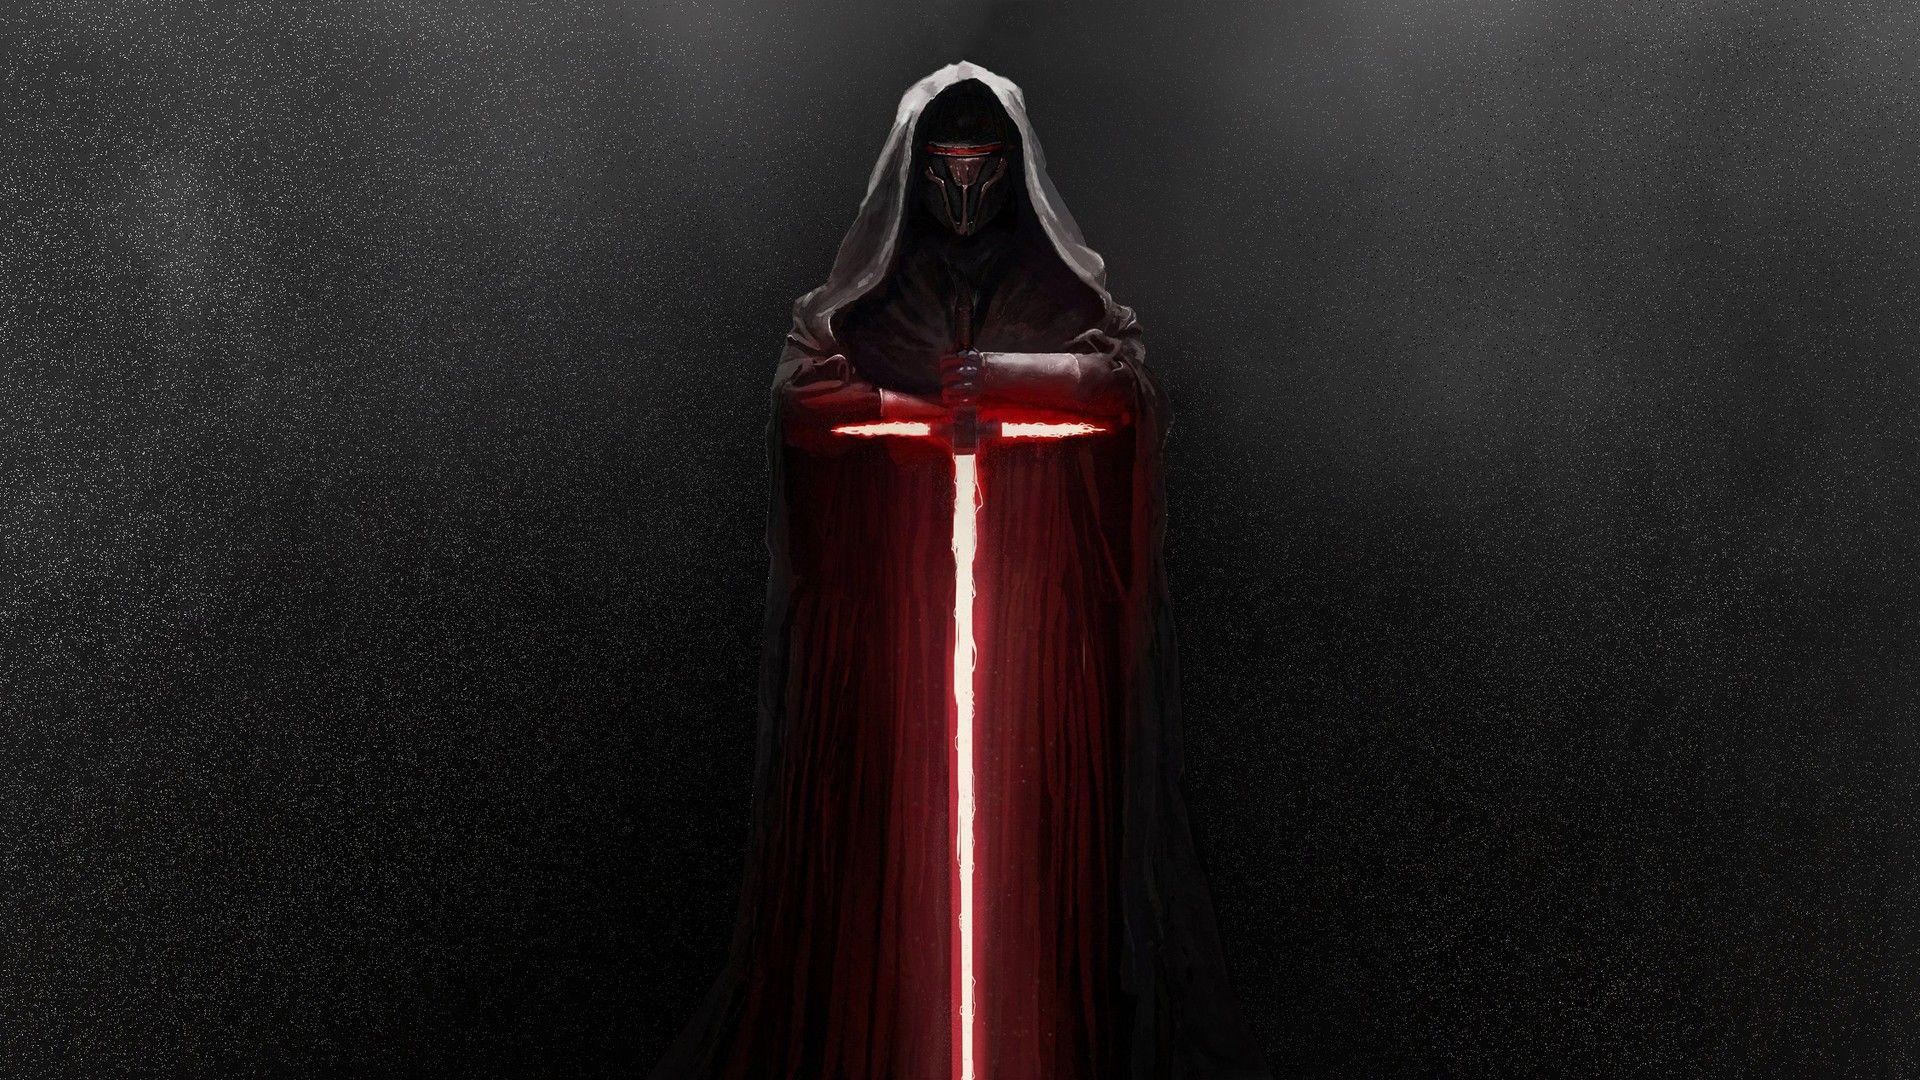 Kylo Ren wallpapers 1920x1080 ·① Download free cool wallpapers for